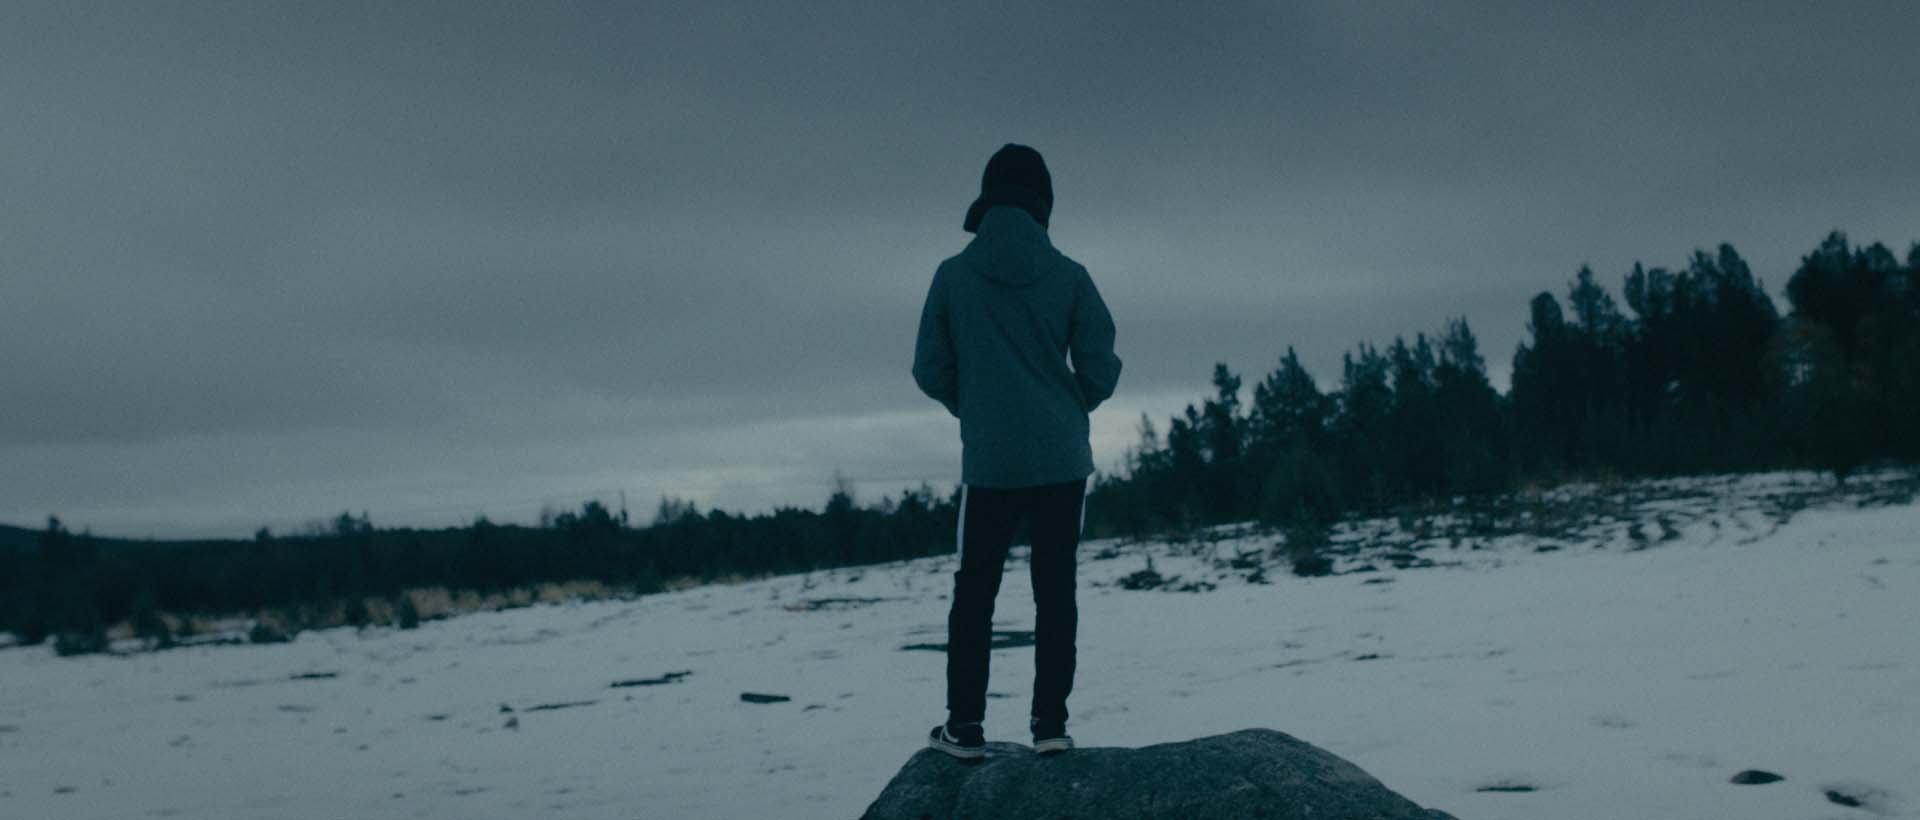 Cinematography by Uffe Mulvad